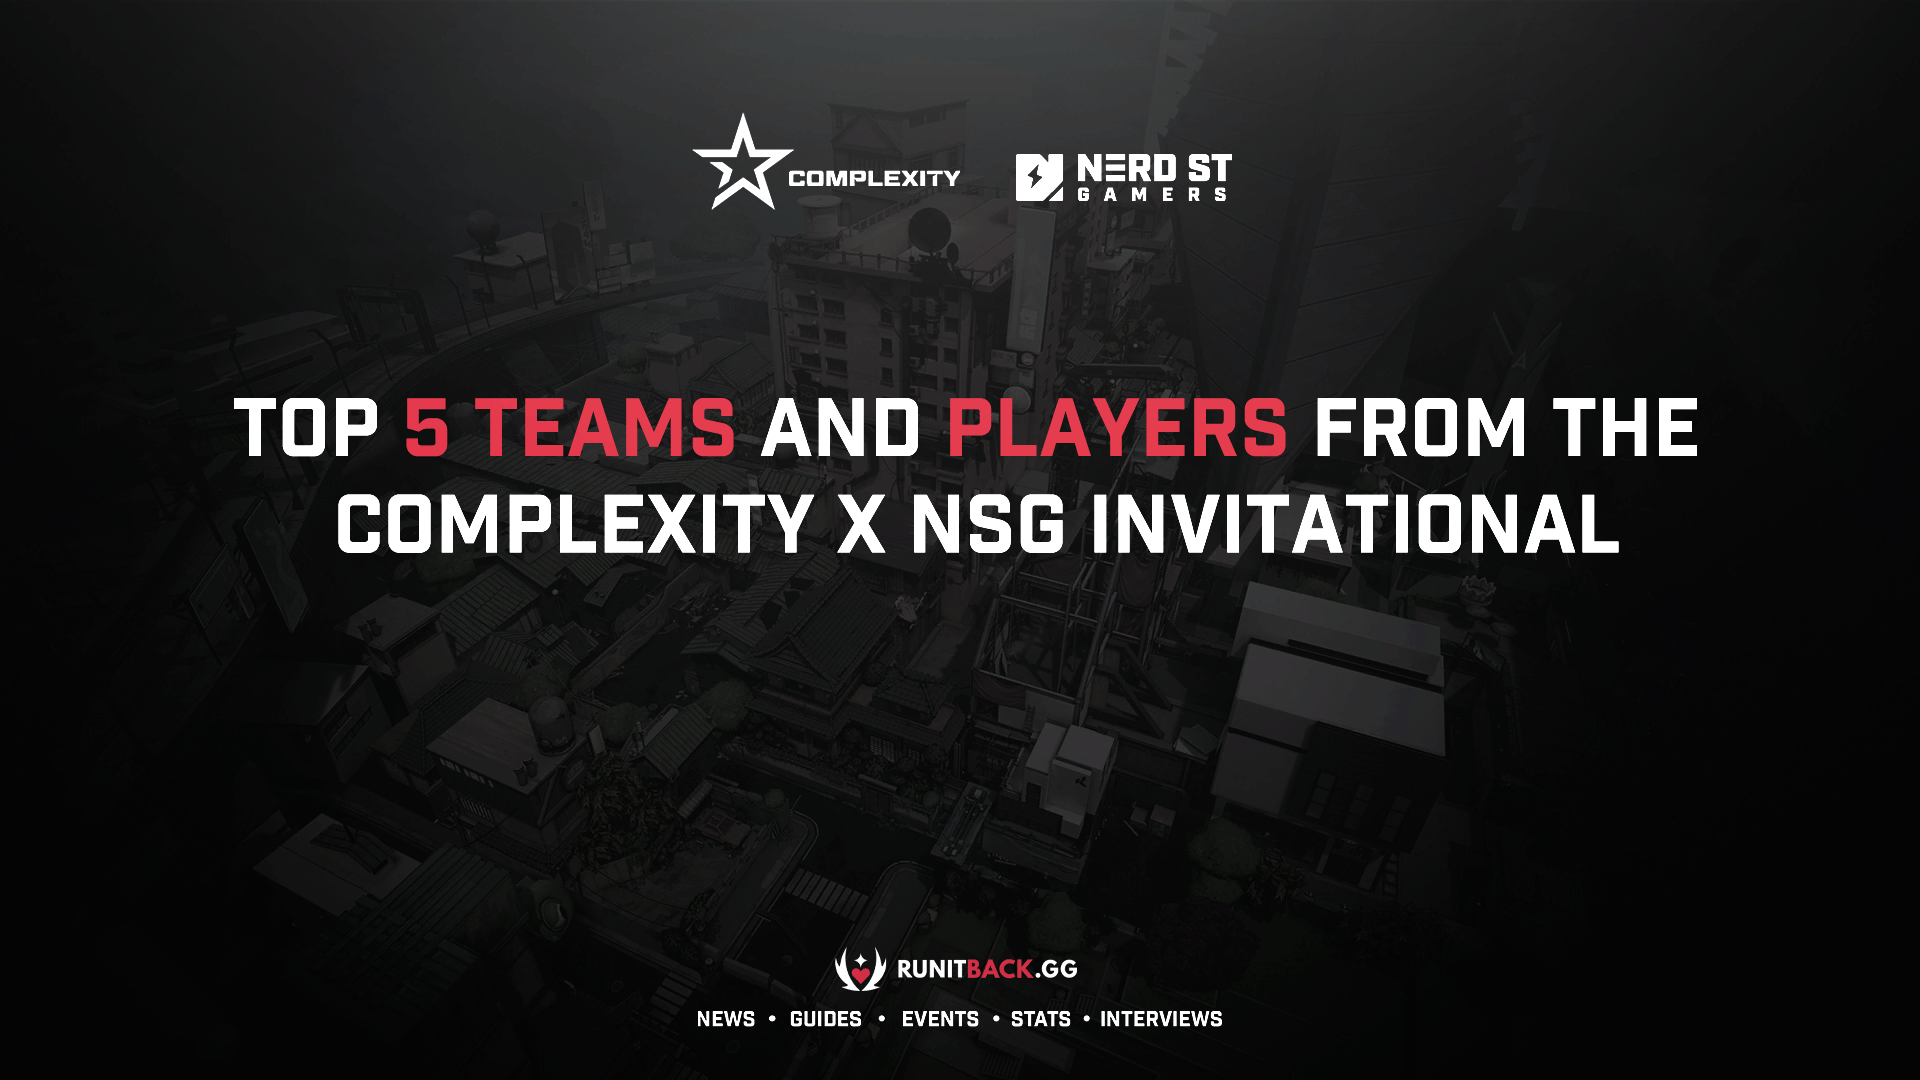 Who were the top 5 teams and players from the Complexity x NSG Invitational?